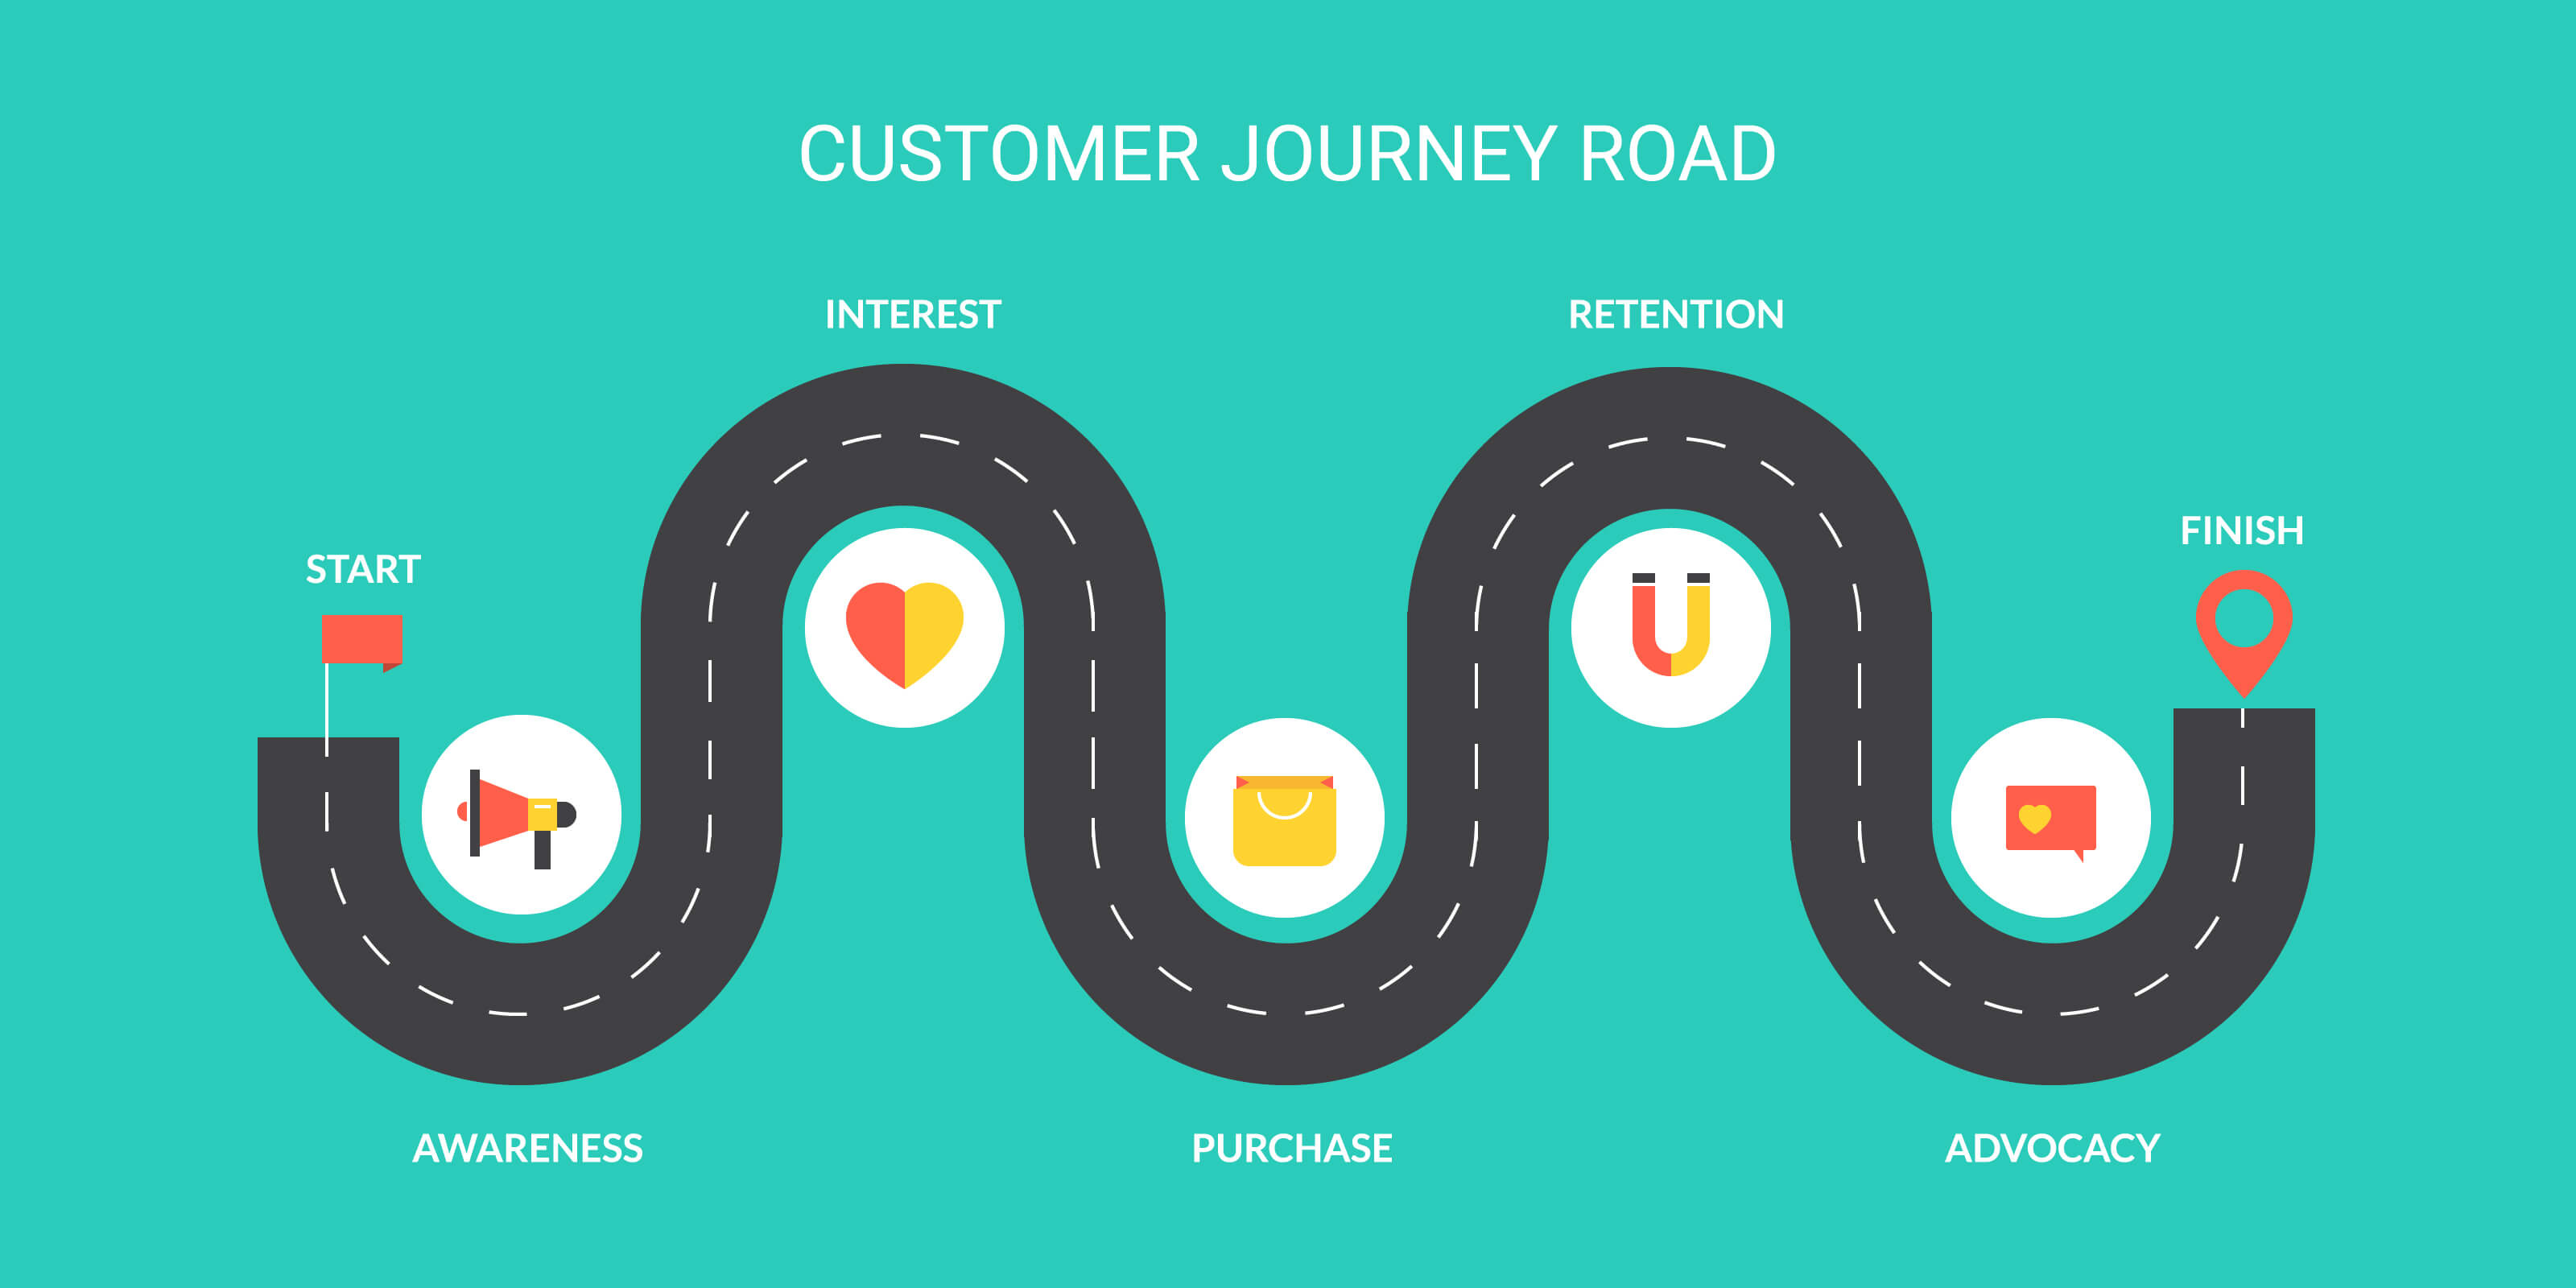 The buyer journey road